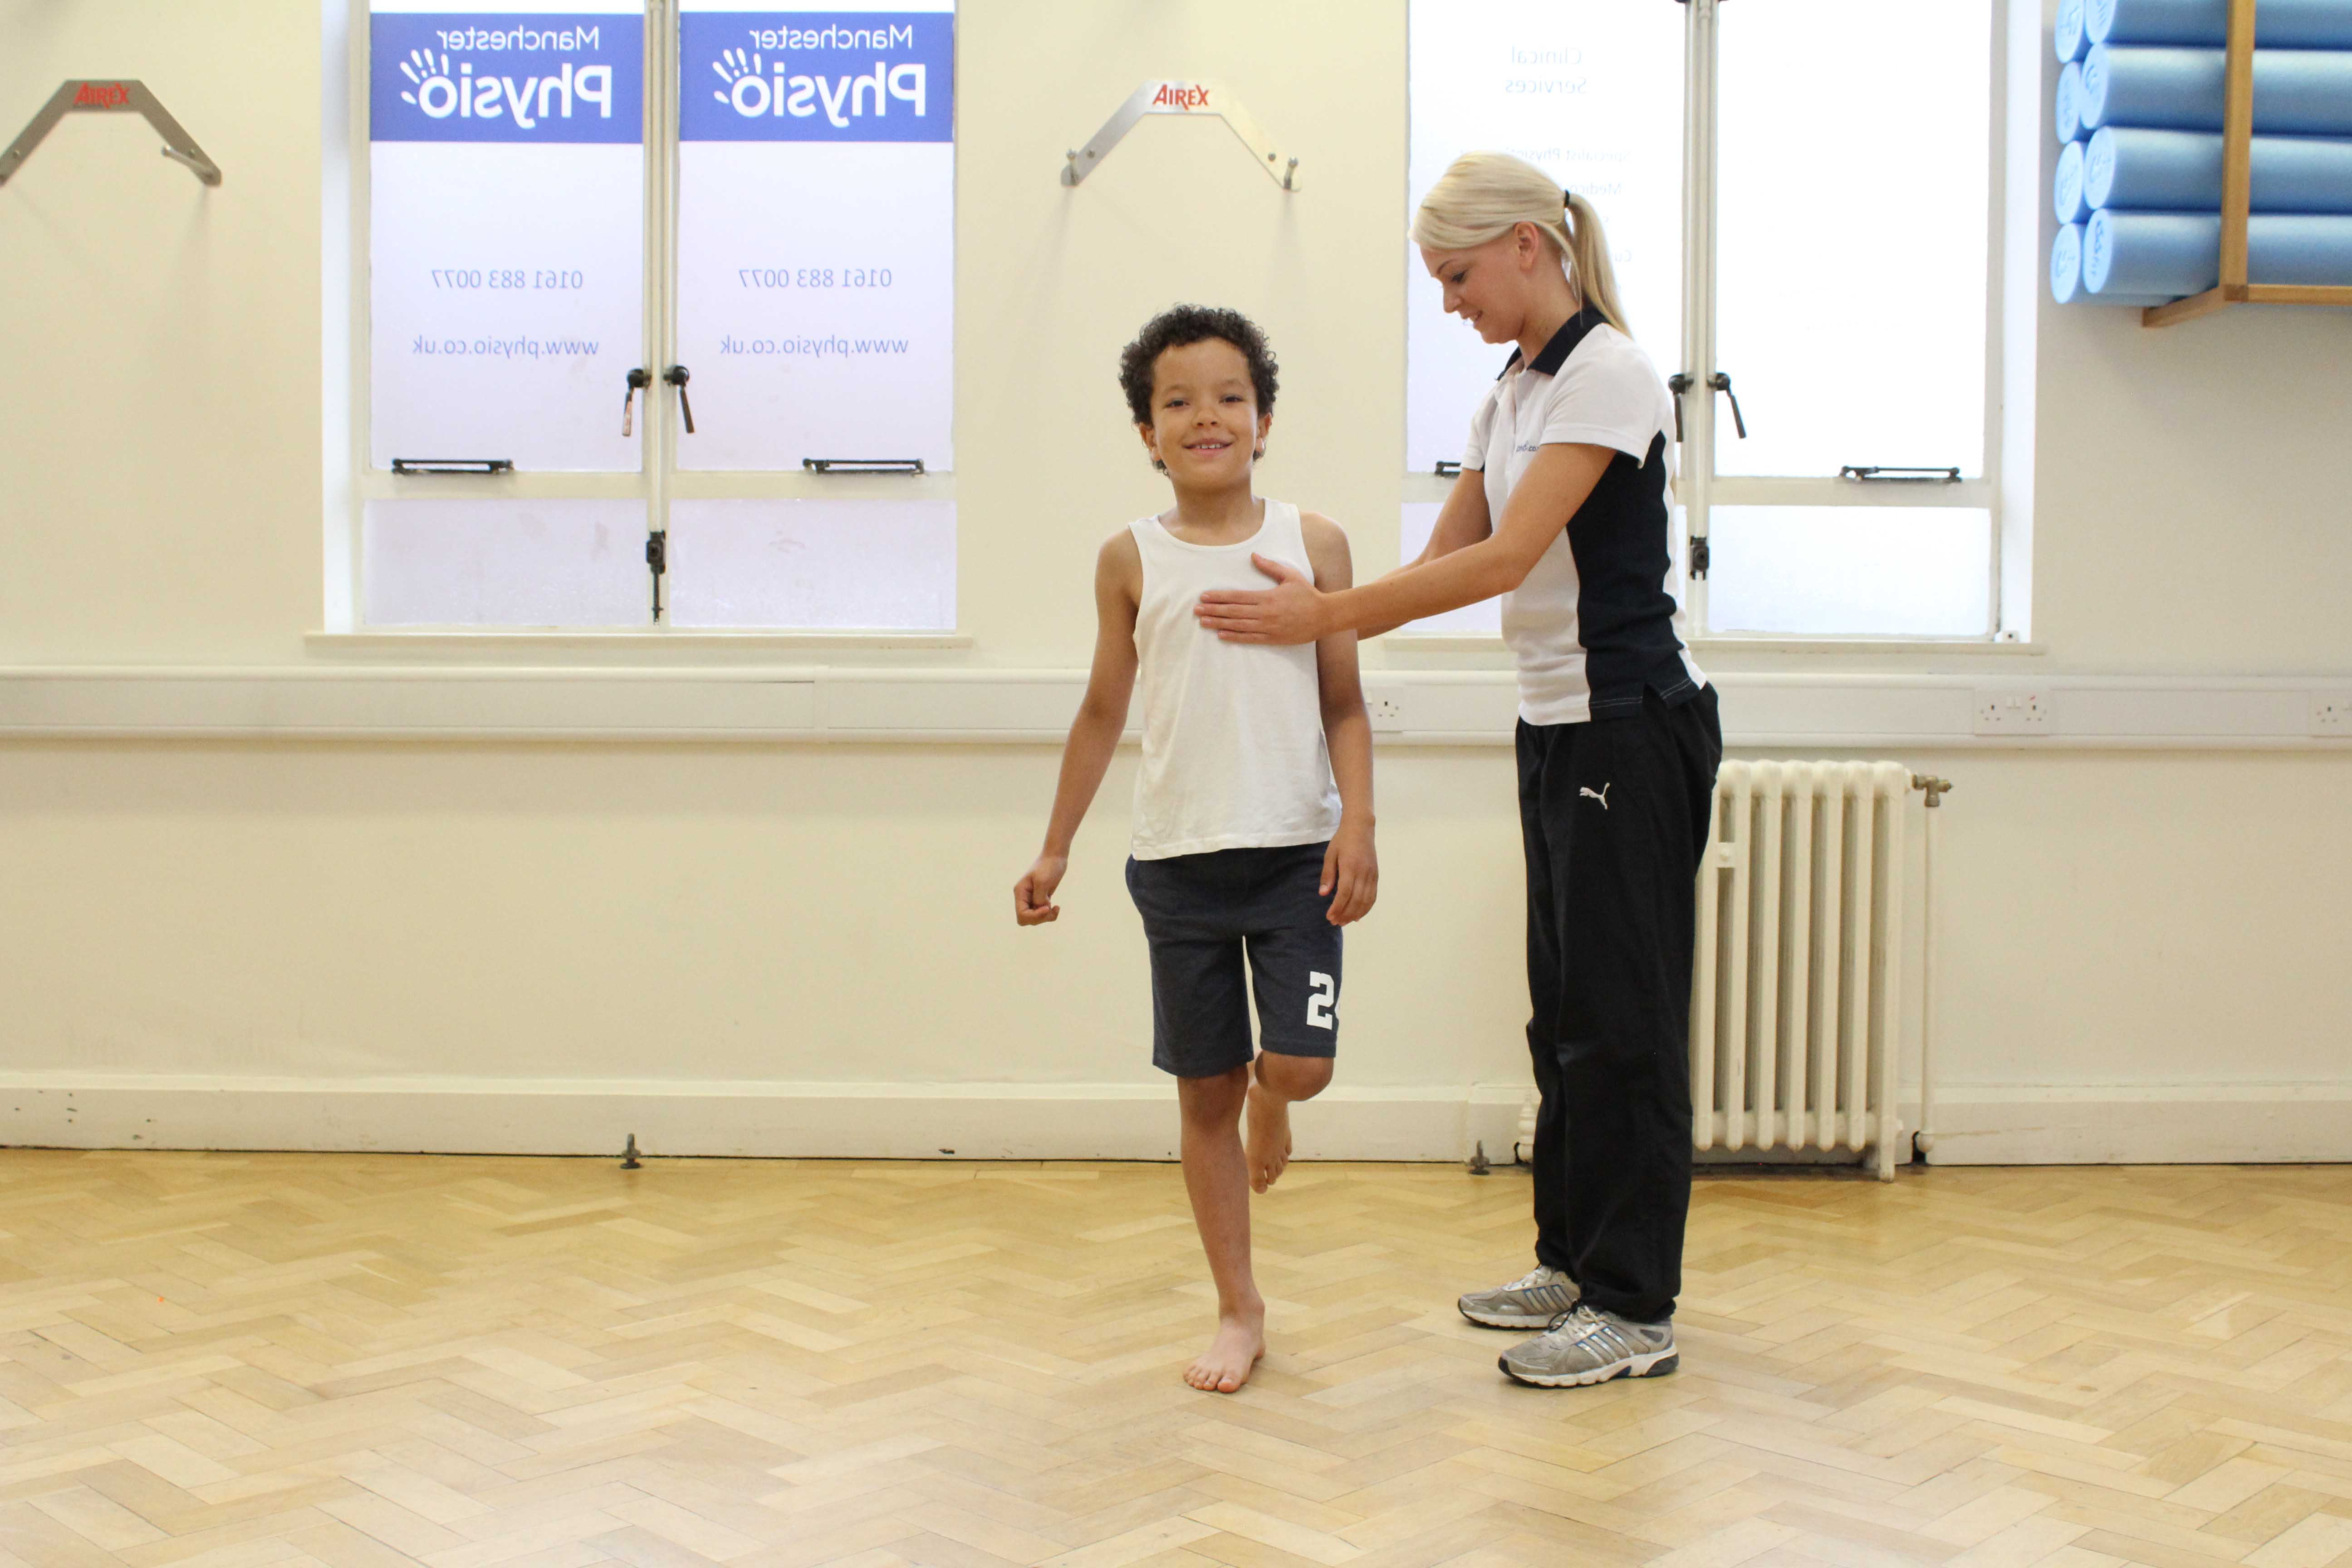 Balance and stability exercises supervised by experienced paediatric physiotherapist